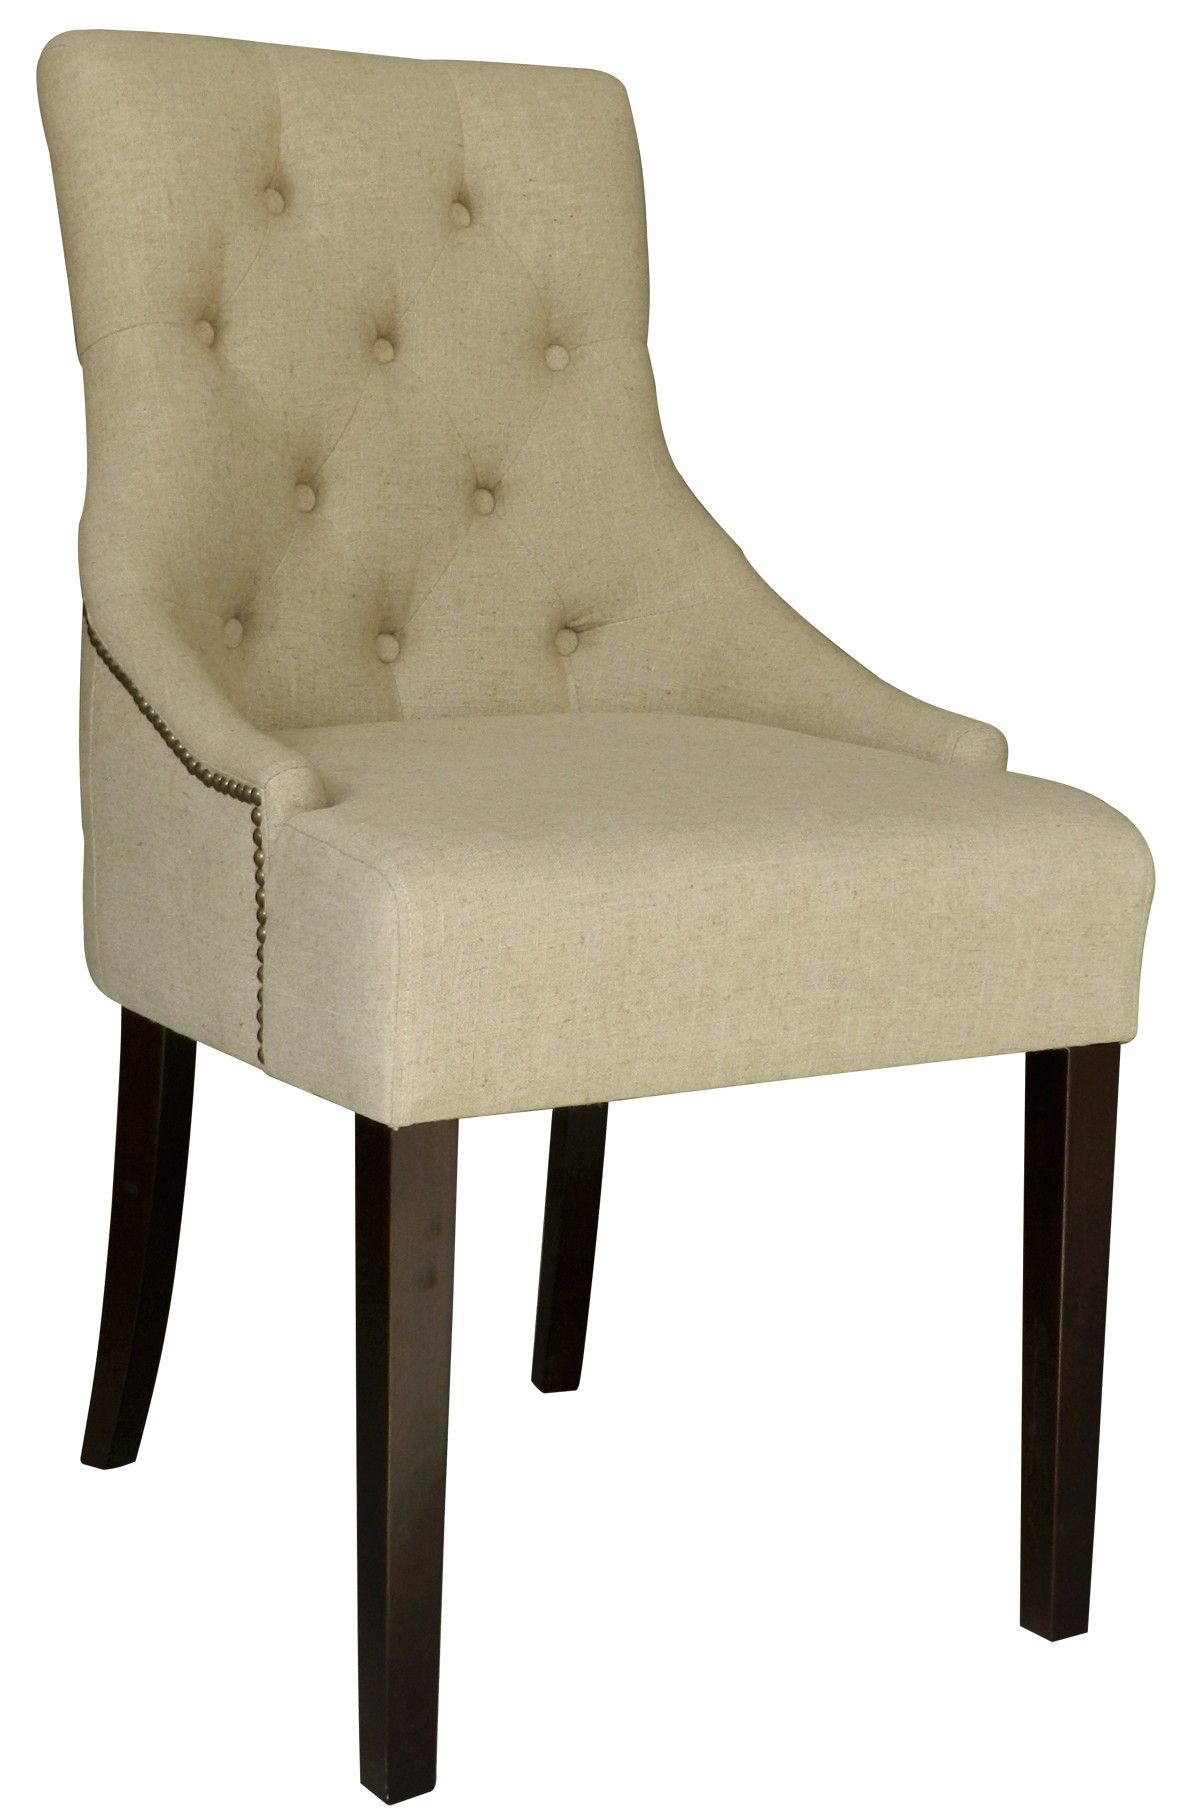 Best Gorgeous Accent Chair In A Soft Neutral Linen Fabric 640 x 480